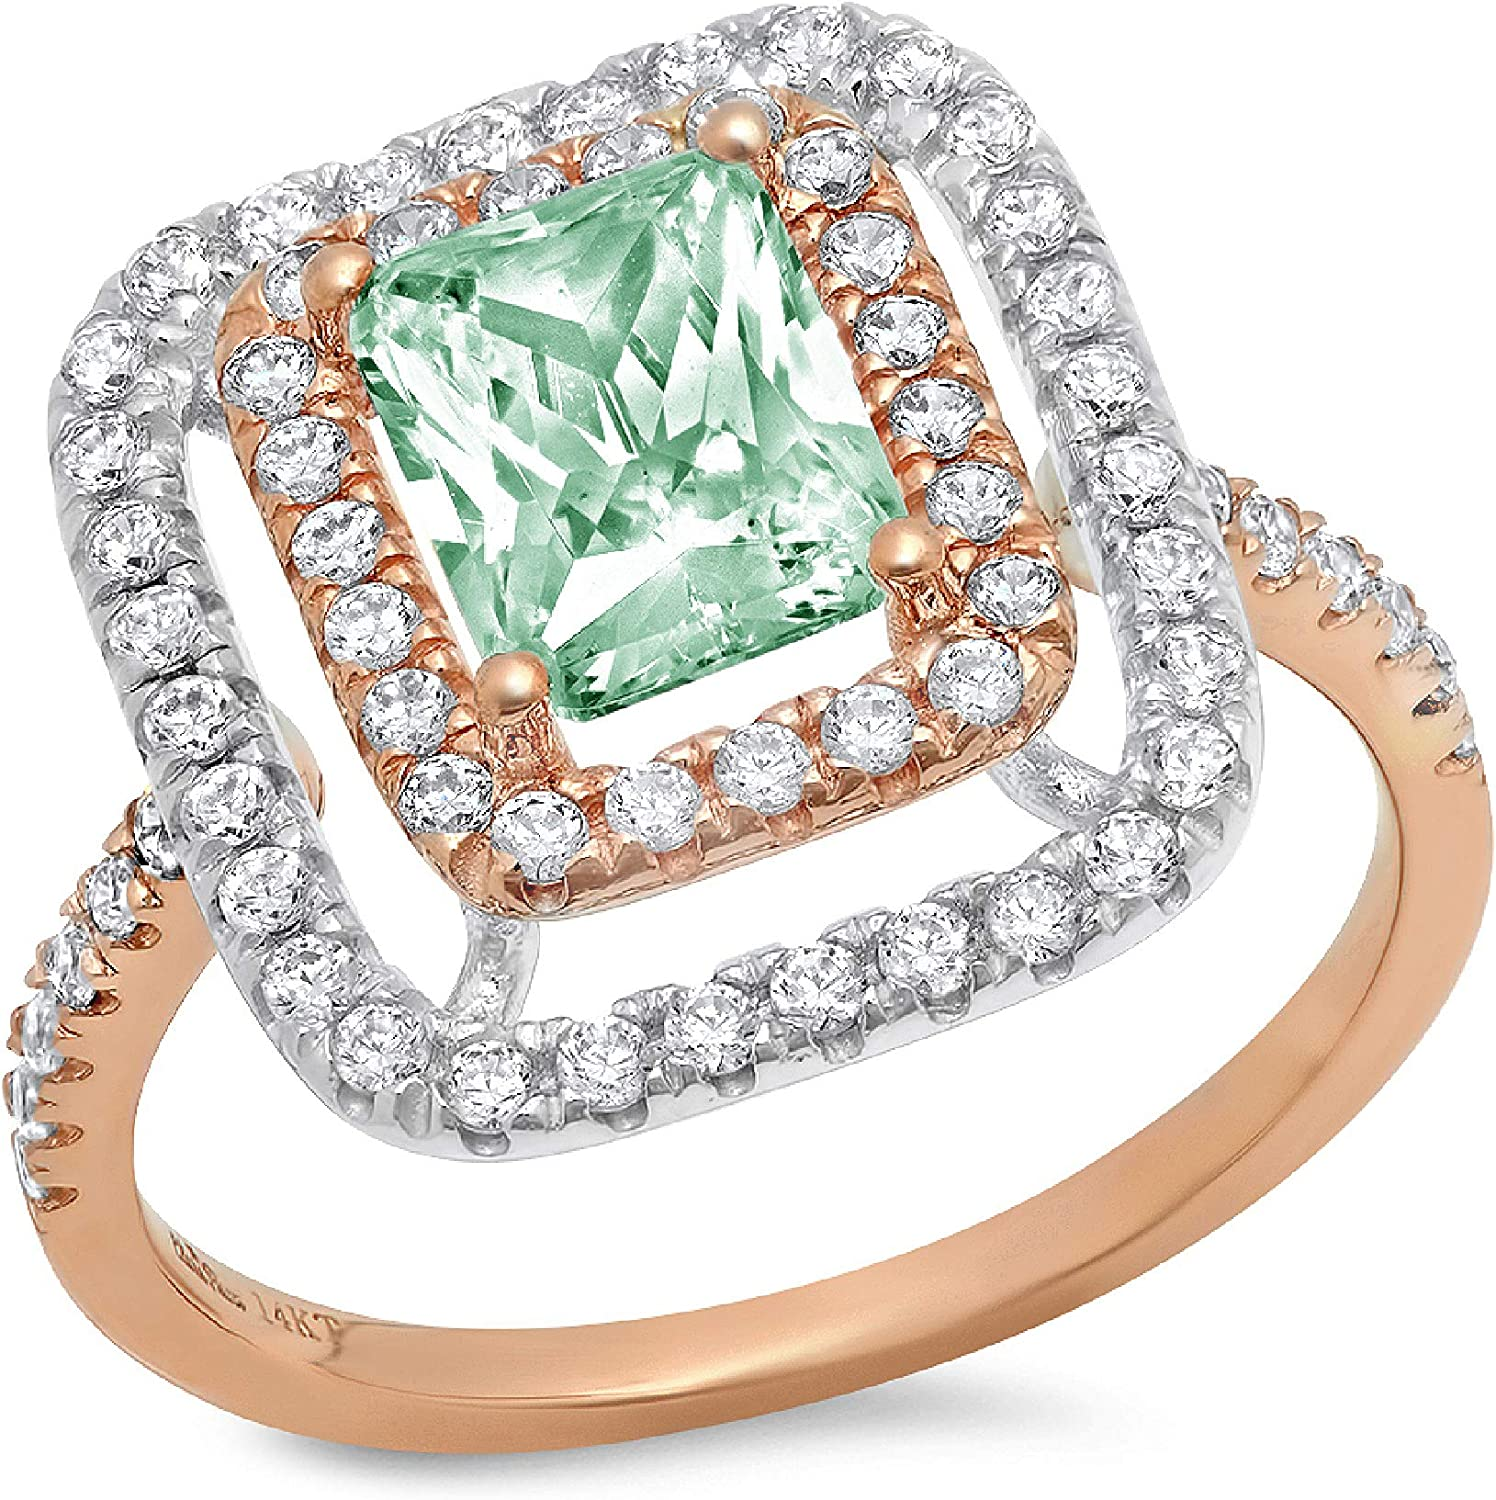 2.66 ct Emerald Cut Double Halo Solitaire with Accent Davidsonite Mint Green Simulated Diamond Ideal VVS1 Engagement Promise Statement Anniversary Bridal Wedding Ring 14k 2 tone Gold